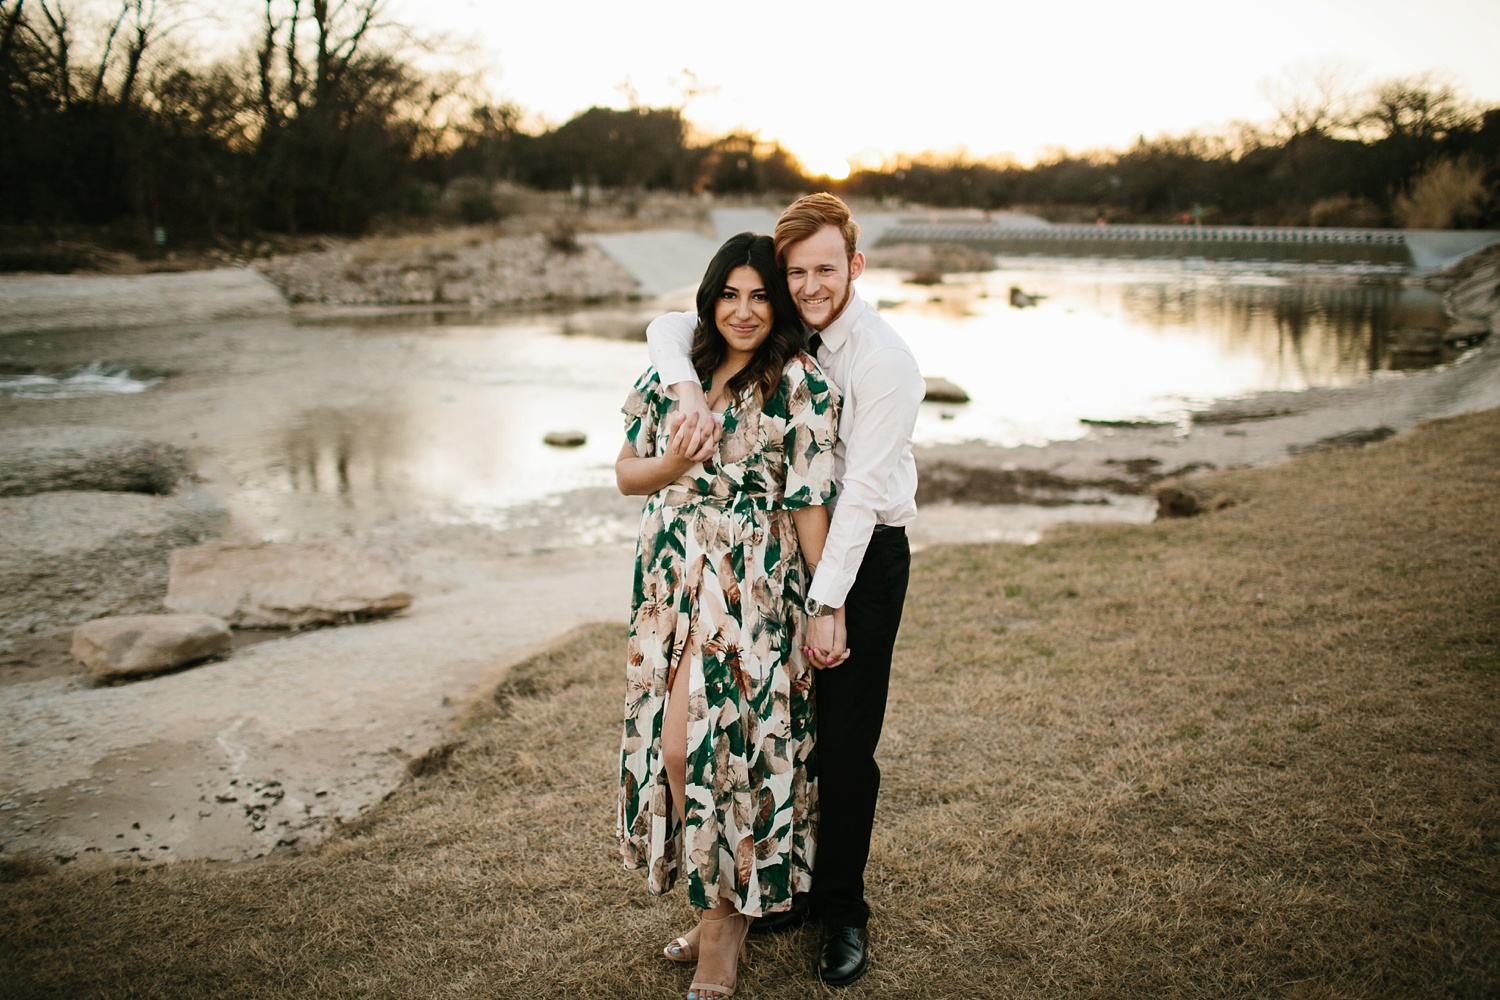 Grant + Lysette - floral dress engagement session by North Texas Wedding Photographer Rachel Meagan Photography080